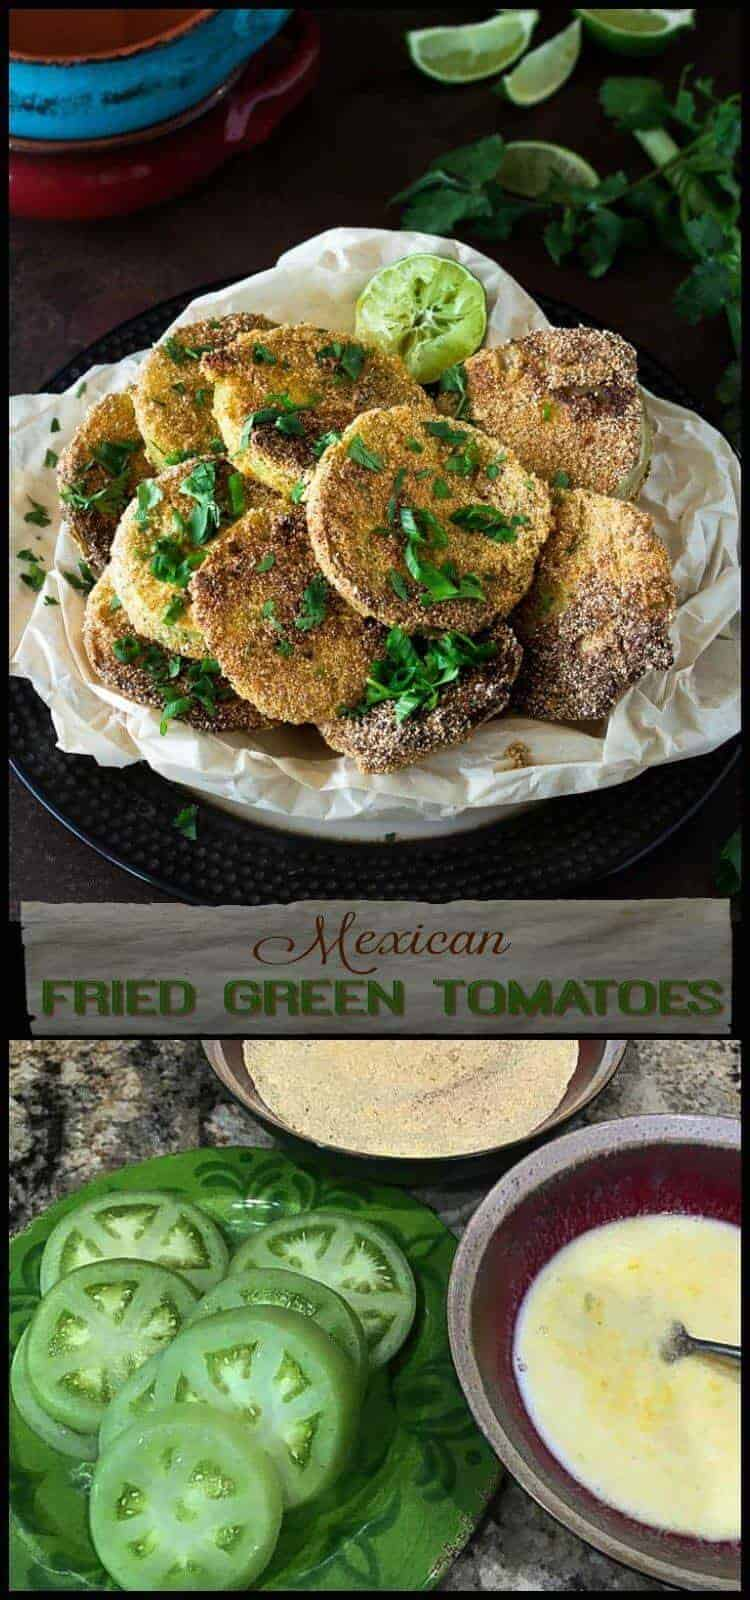 Mexican Fried Green Tomatoes - Crispy, crunchy on the outside, tender and full of fresh, tangy flavor on the inside... Mexican Fried Green Tomatoes are a twist on the classic, and a perfect side dish for your healthy Mexican mains! fried green tomatoes | healthy Mexican food | Mexican side dishes